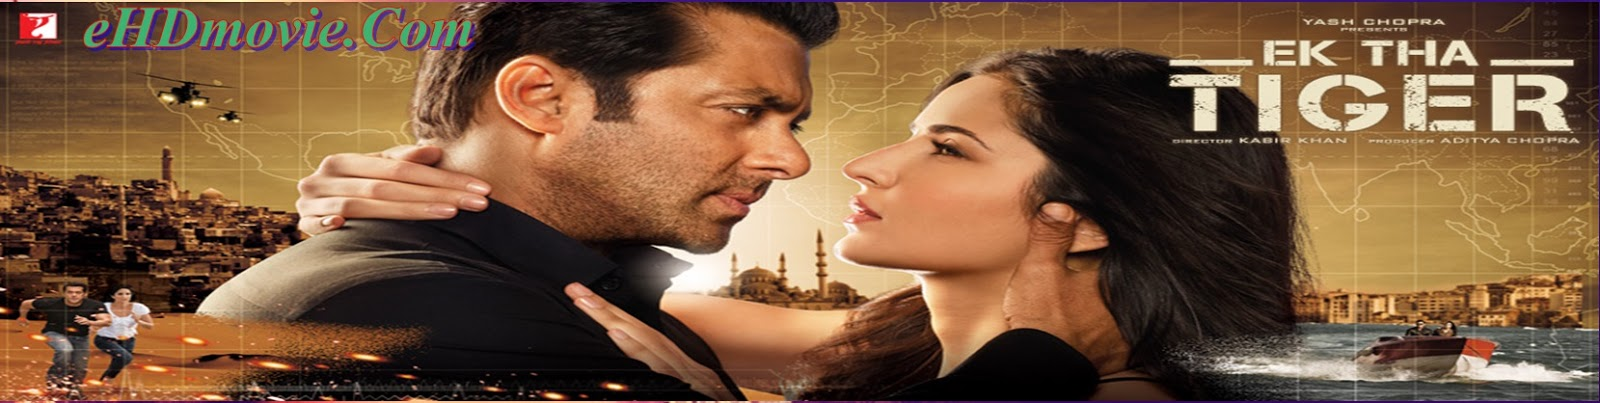 Ek Tha Tiger 2012 Full Movie Hindi 720p - HEVC - 480p ORG BRRip 450MB - 550MB - 1.1GB ESubs Free Download